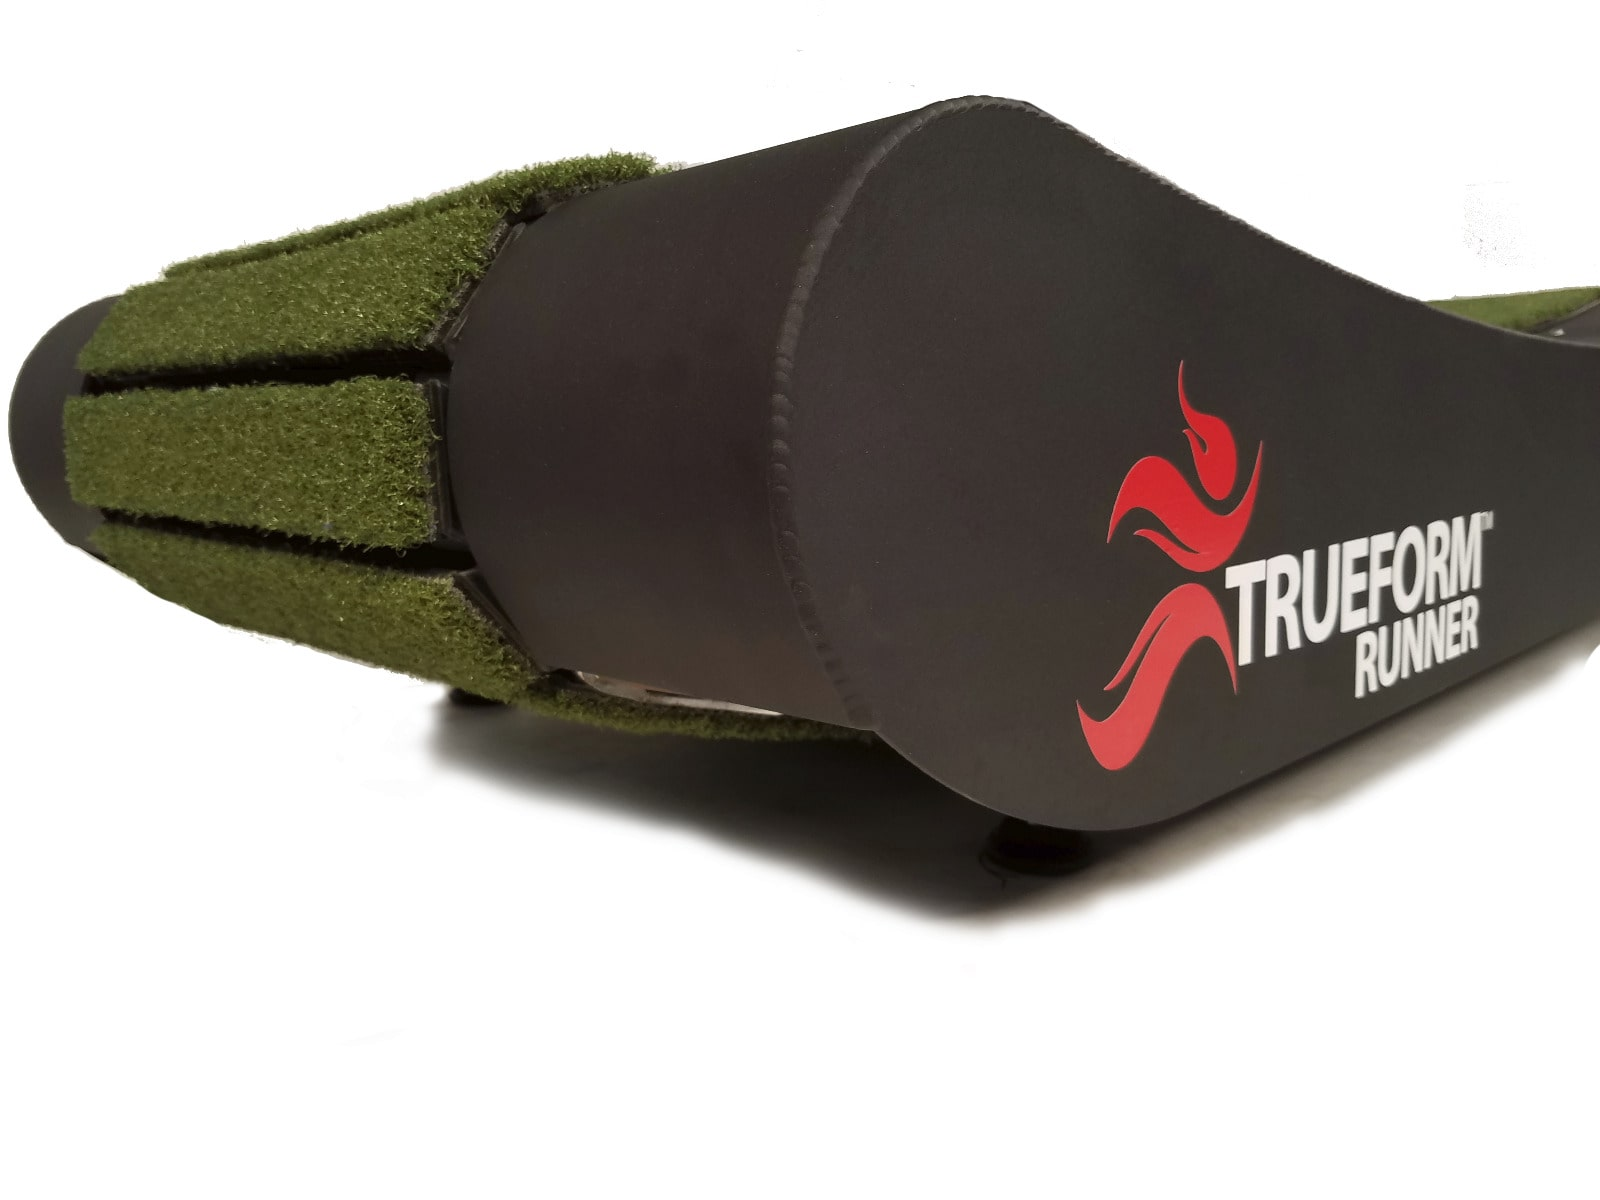 TrueForm Runner Treadmill Turf Track Close Up